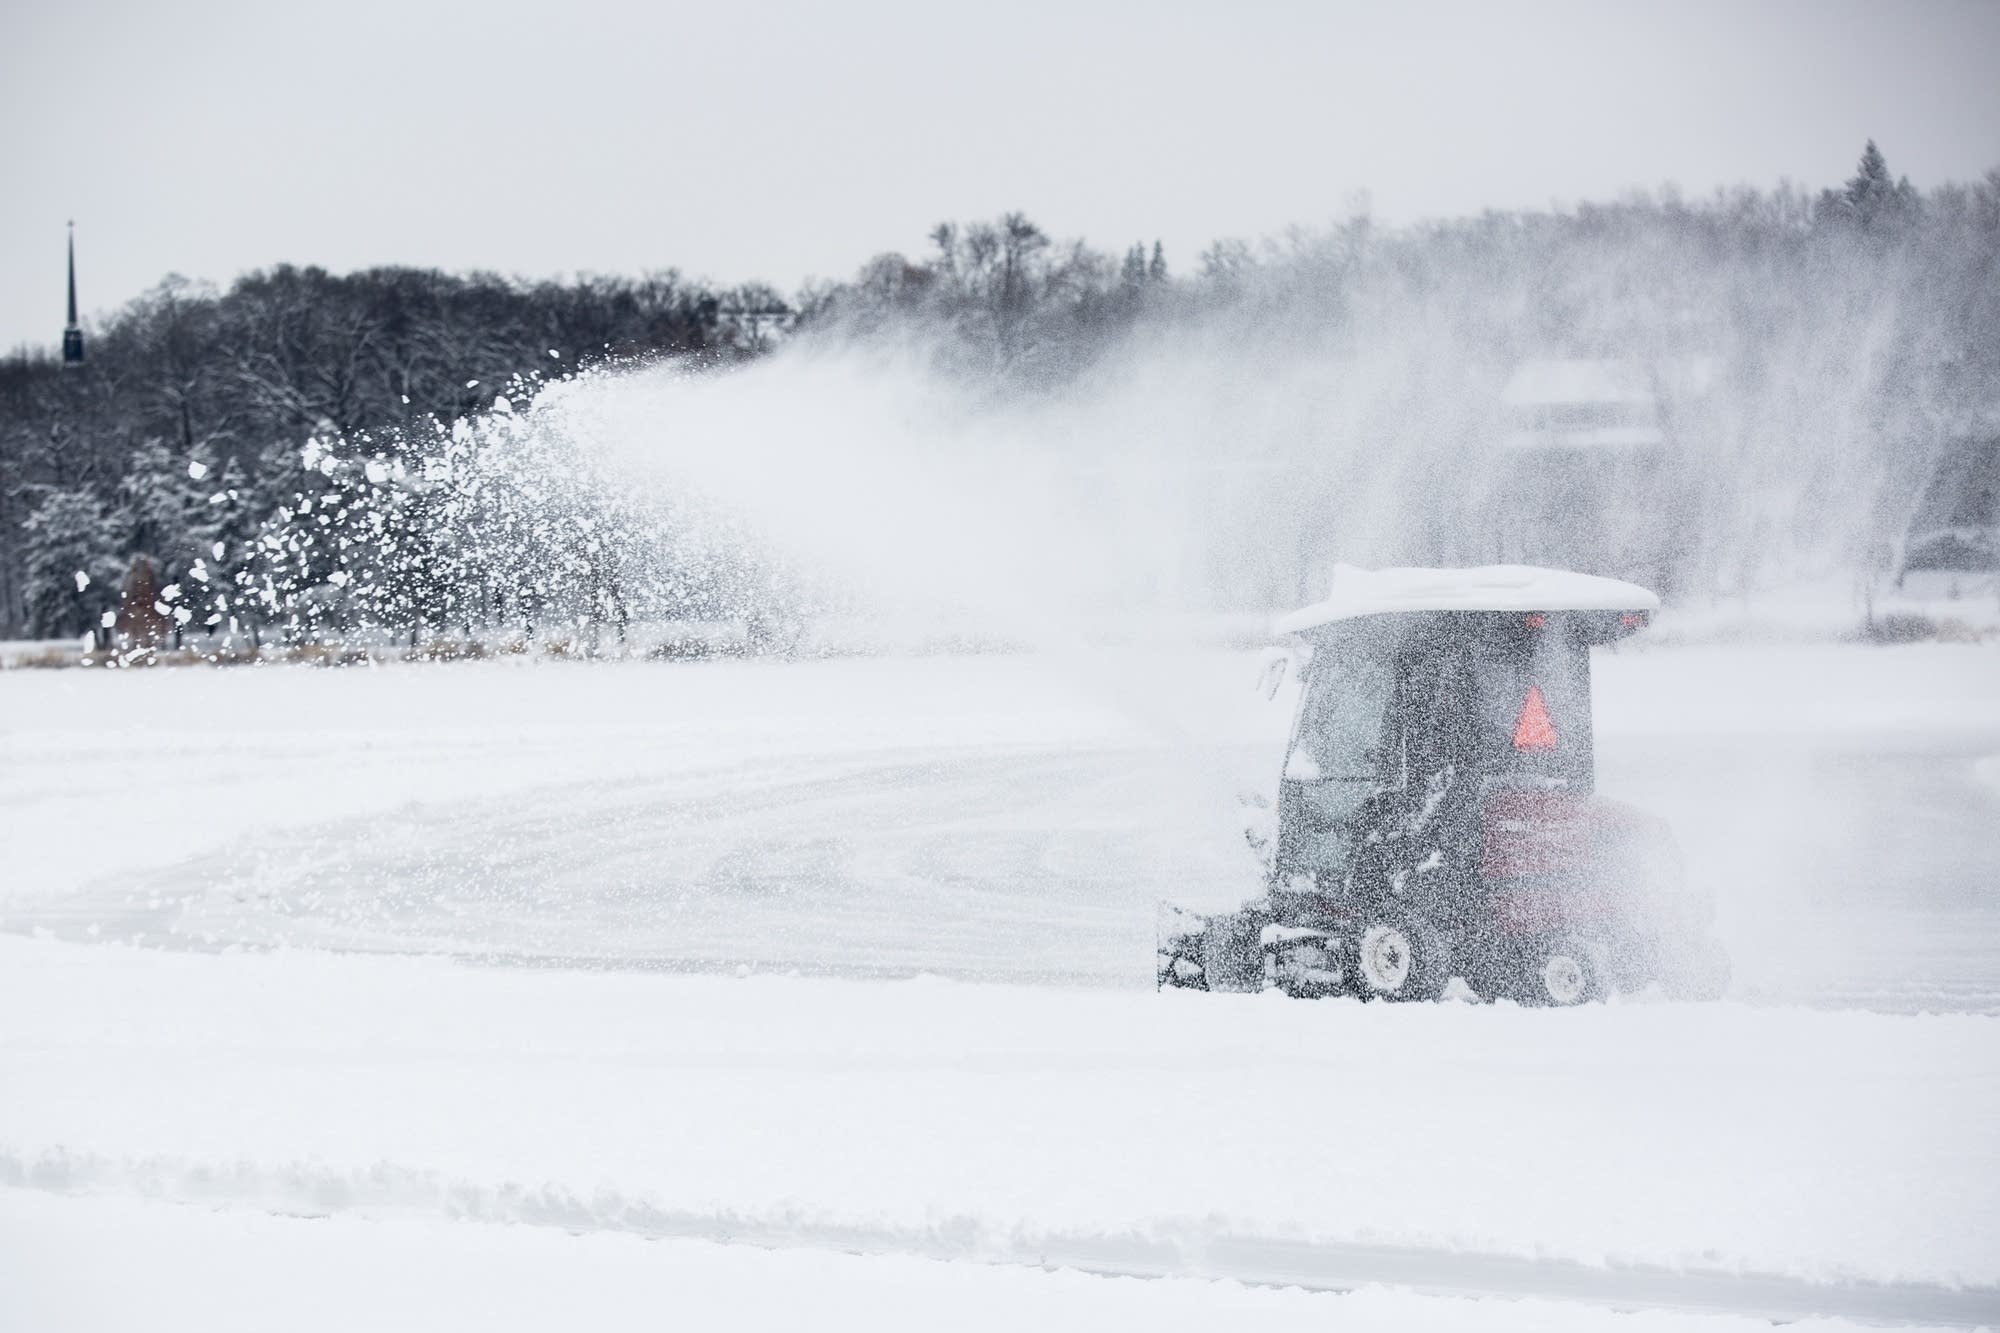 A snowblower sprays snow as it clears ice on Lake of the Isles